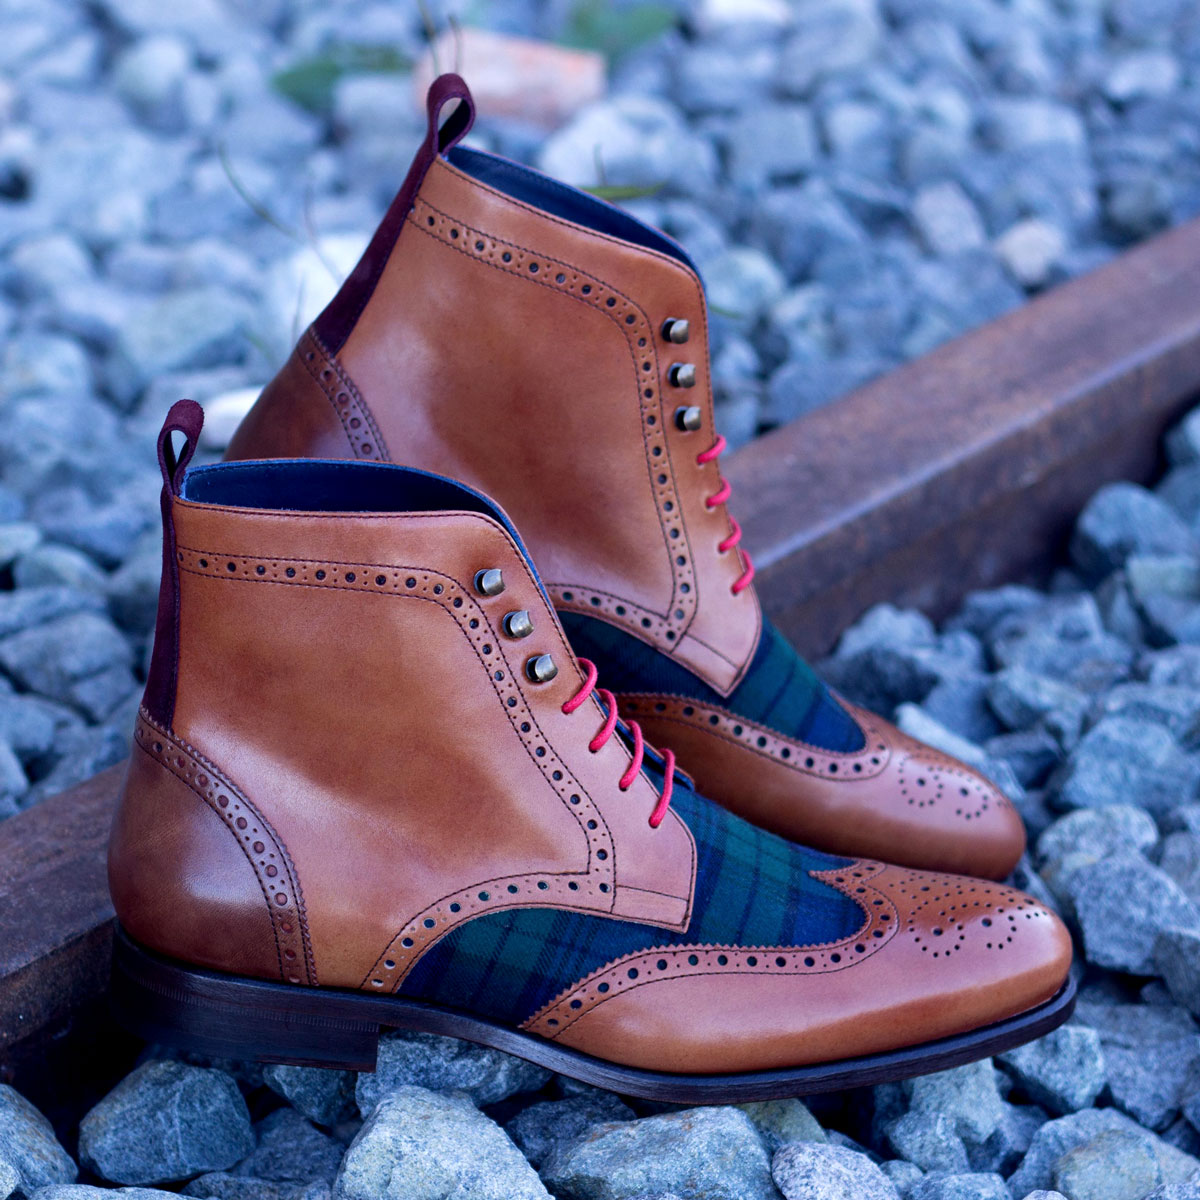 Military brogue blackwatch sartorial + burgundy lux suede + cognac painted calf + med brown painted calf : 250€